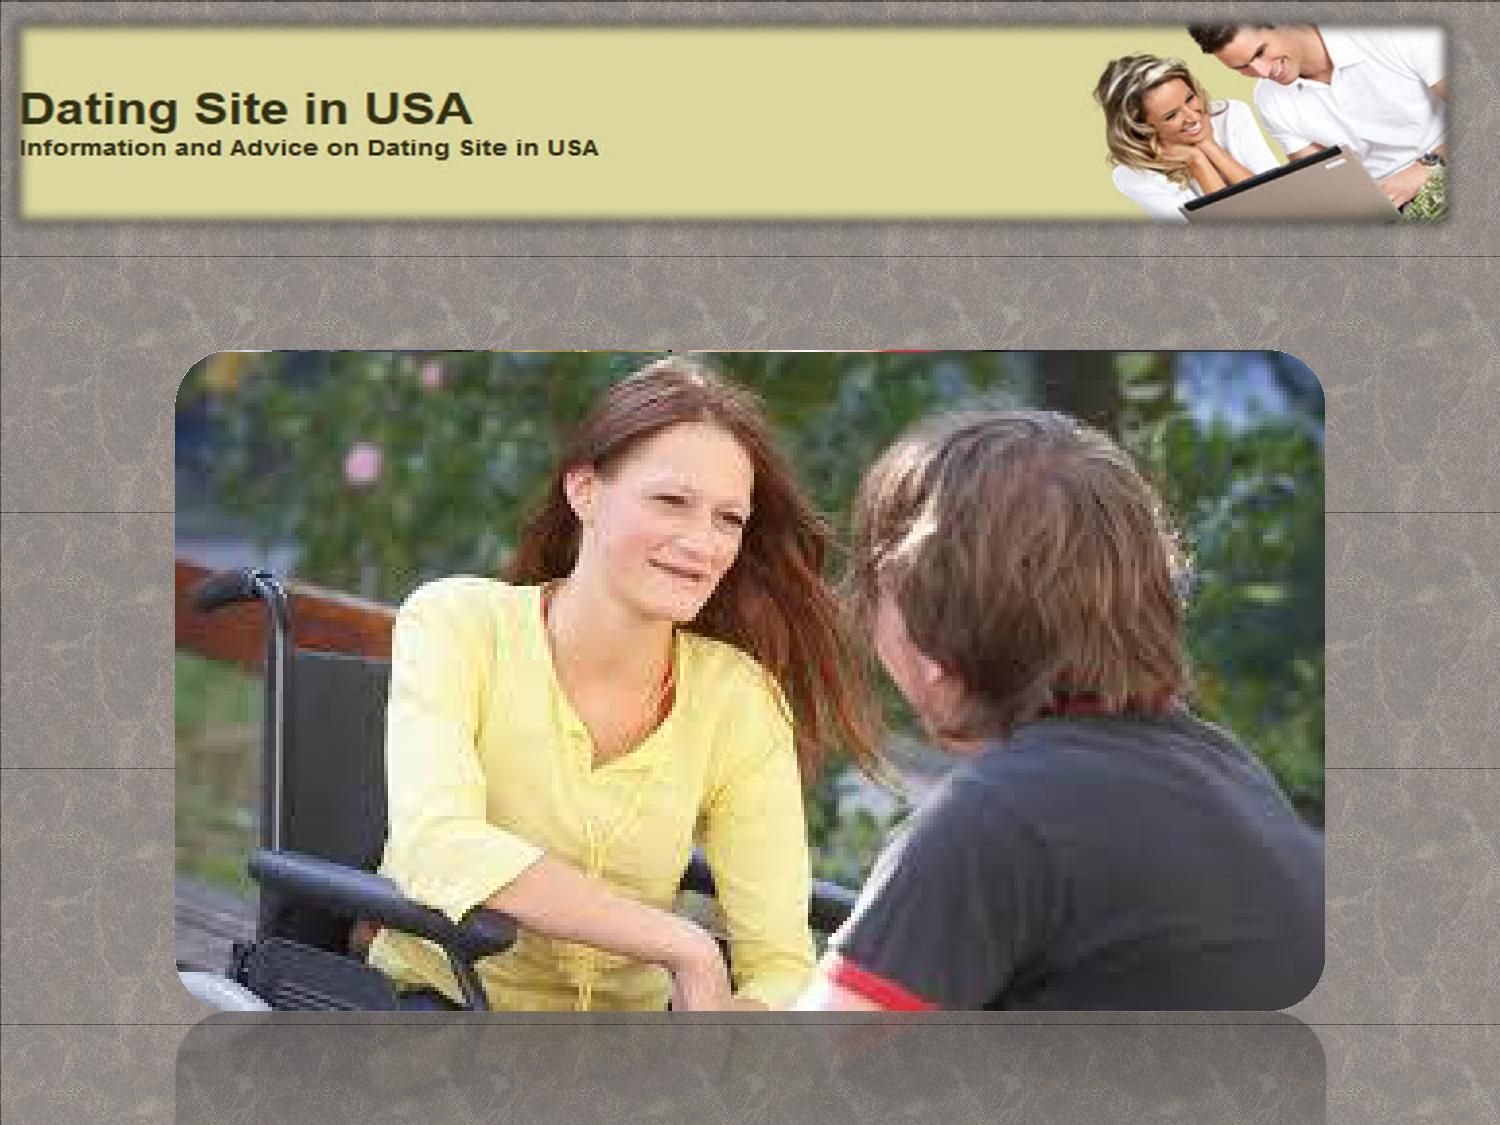 Best website for dating in usa